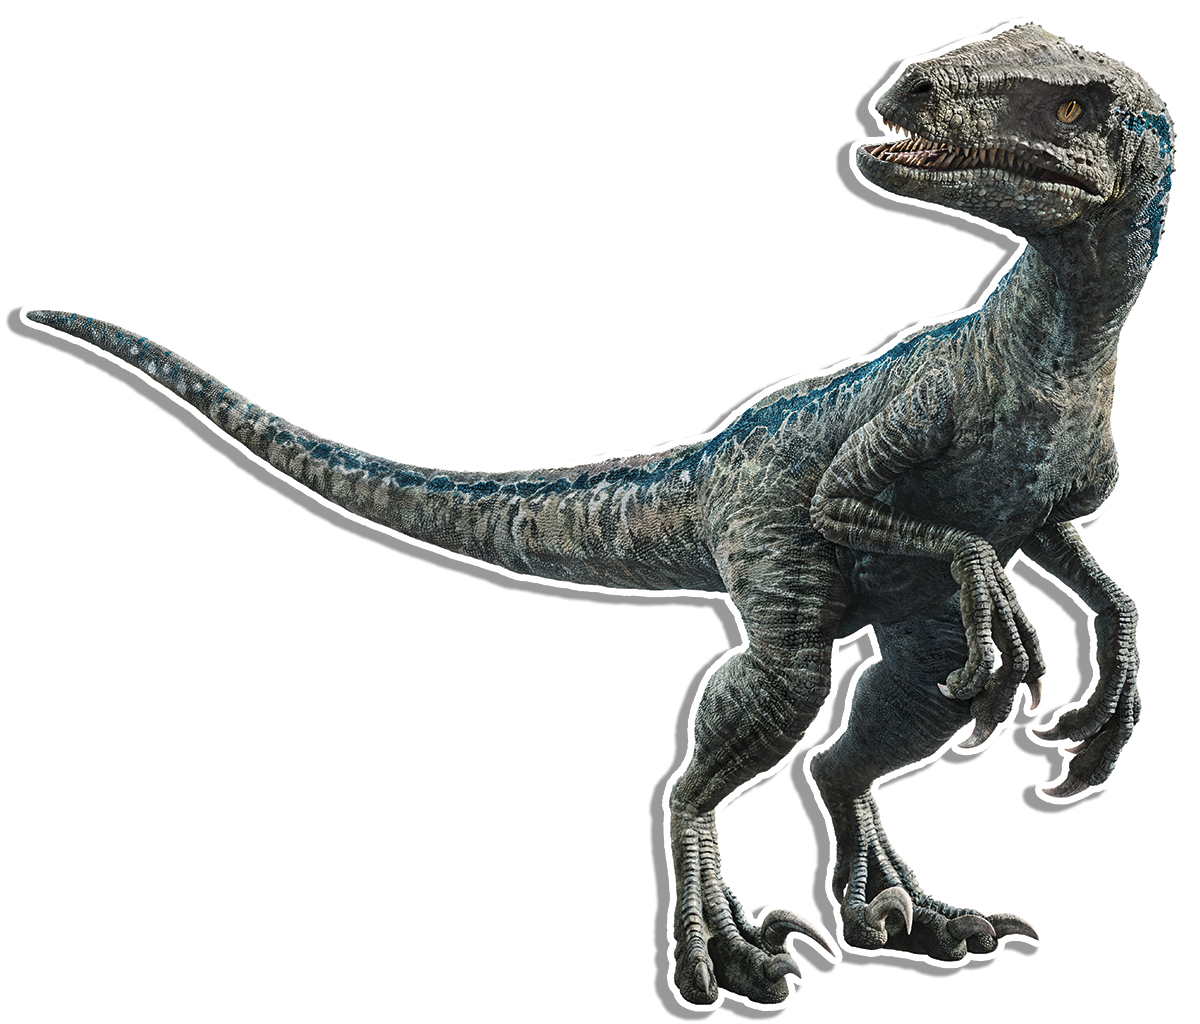 Velociraptor arm png. Dinosaur protection group swift